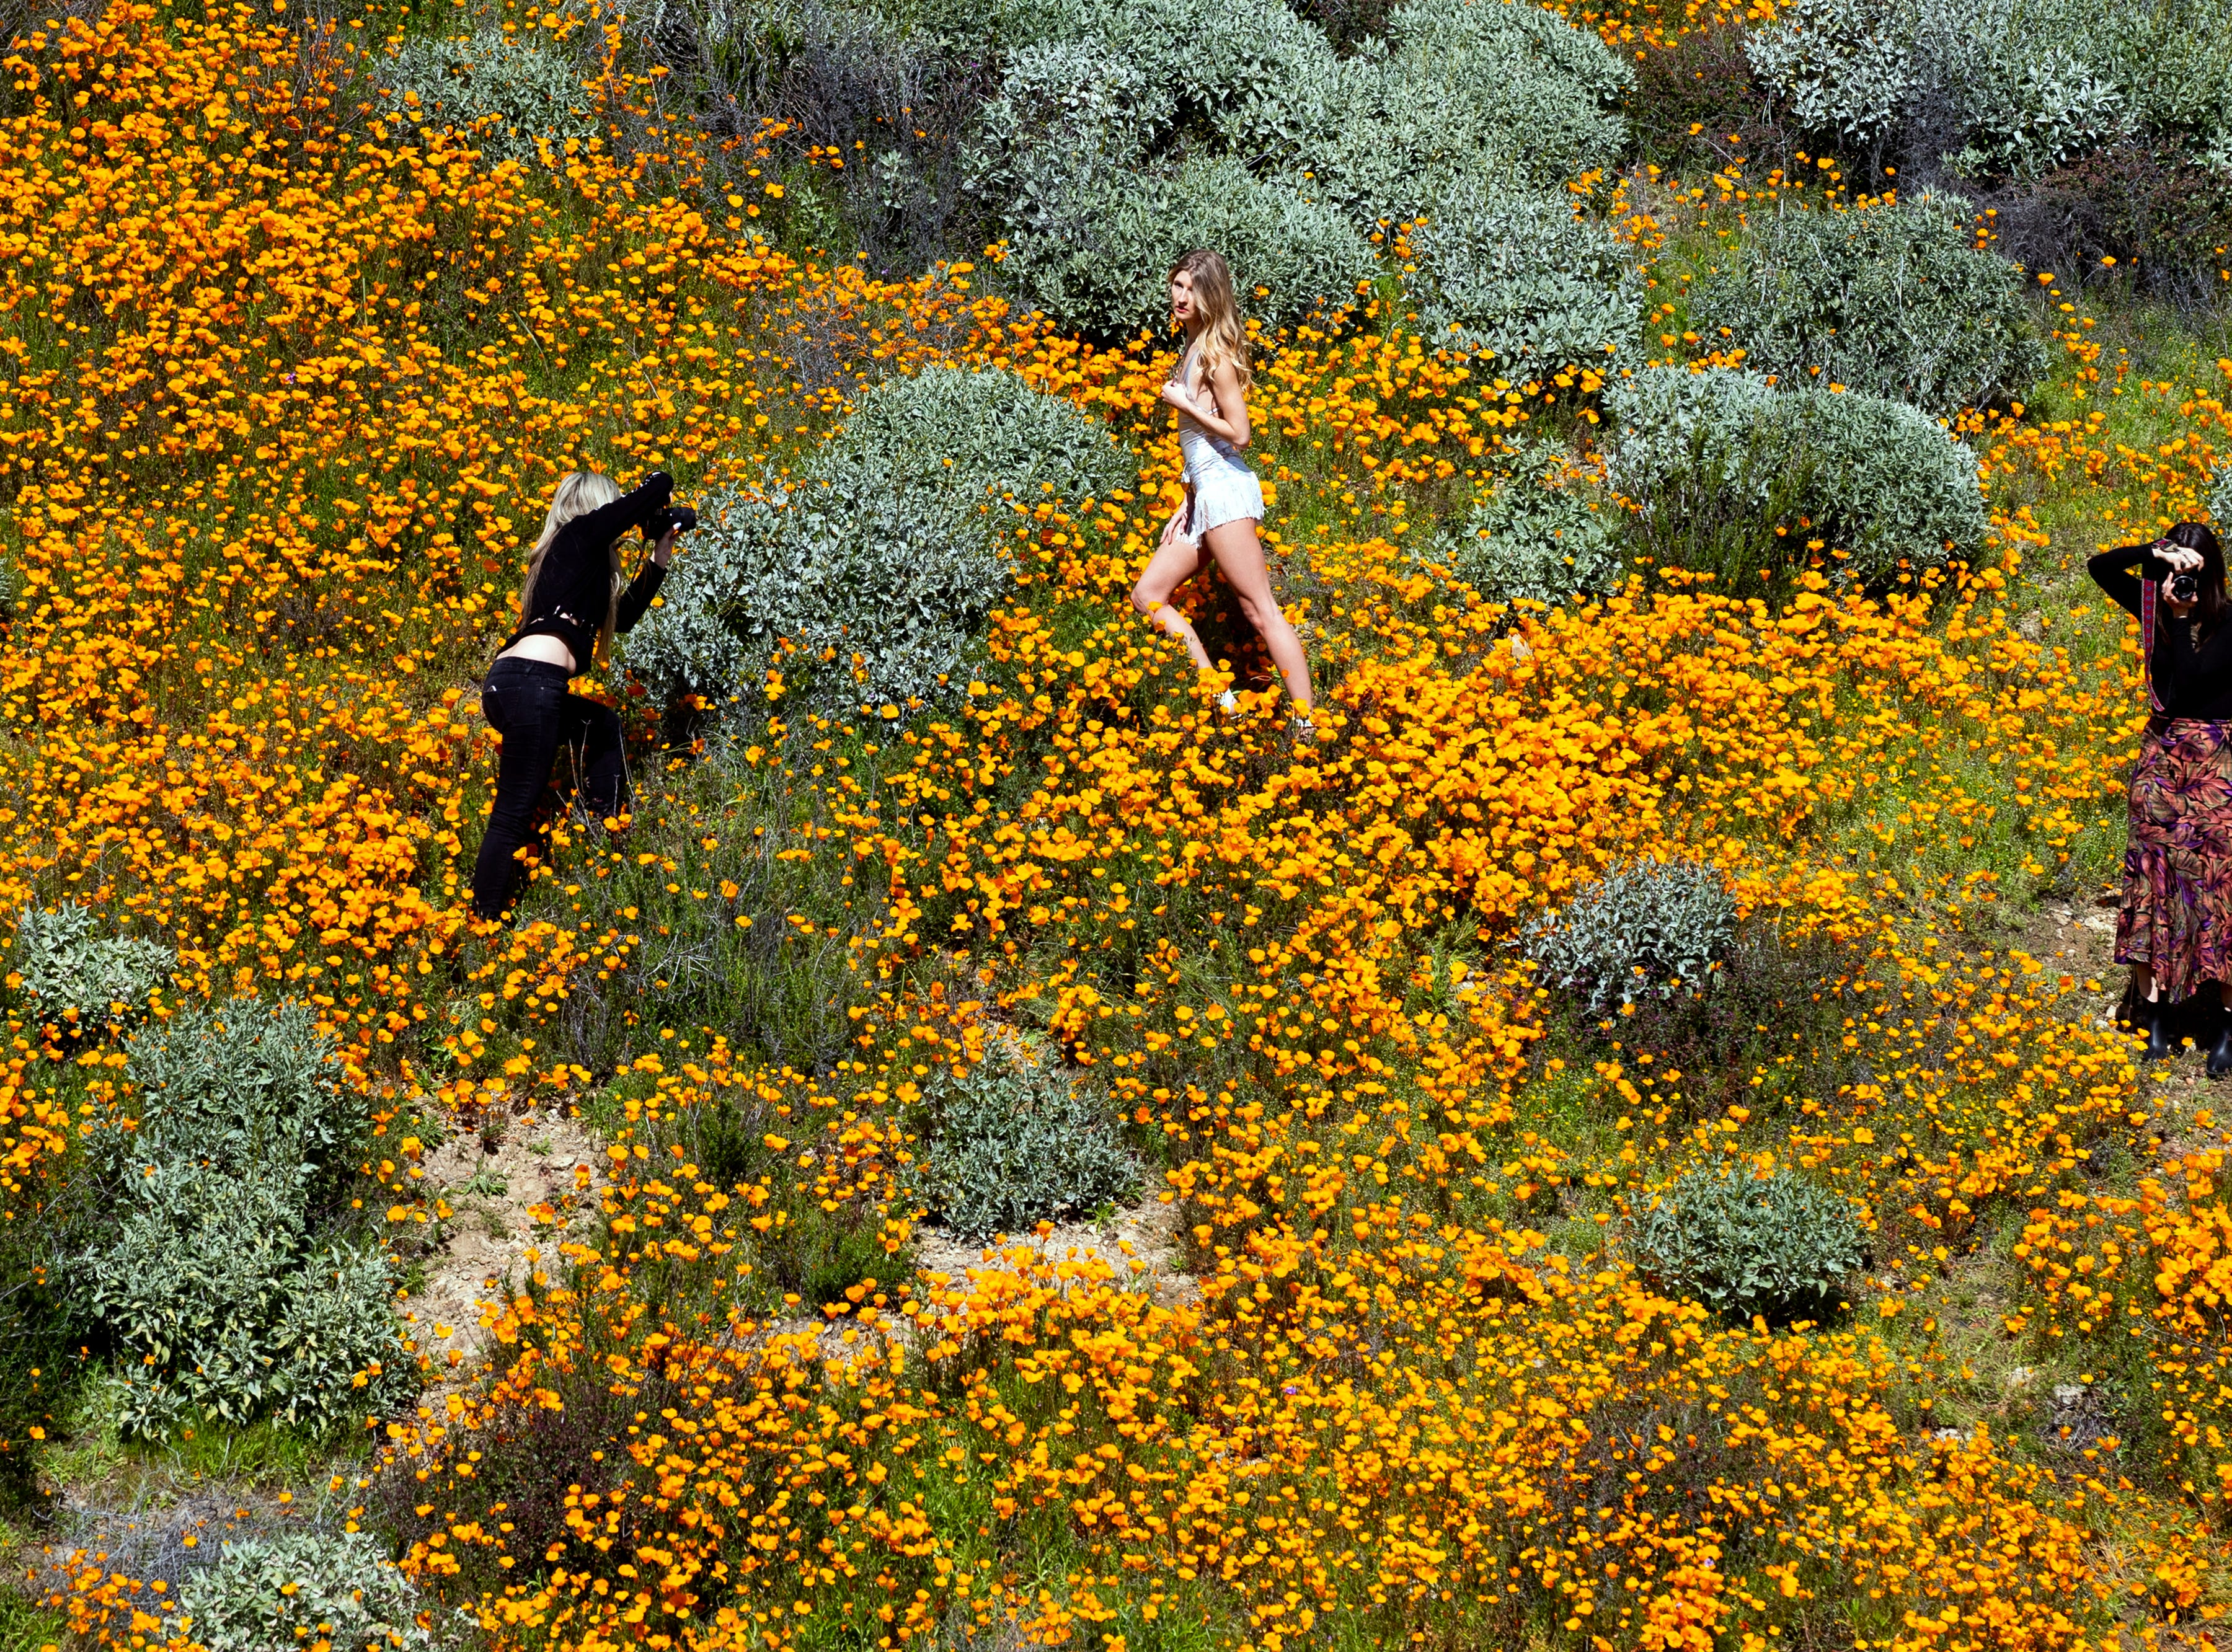 Girls take 'fashion' pictures of each other in the middle of a poppy fields on a slop of Walker Canyon near Lake Elsinore, Calif. March 8, 2019.